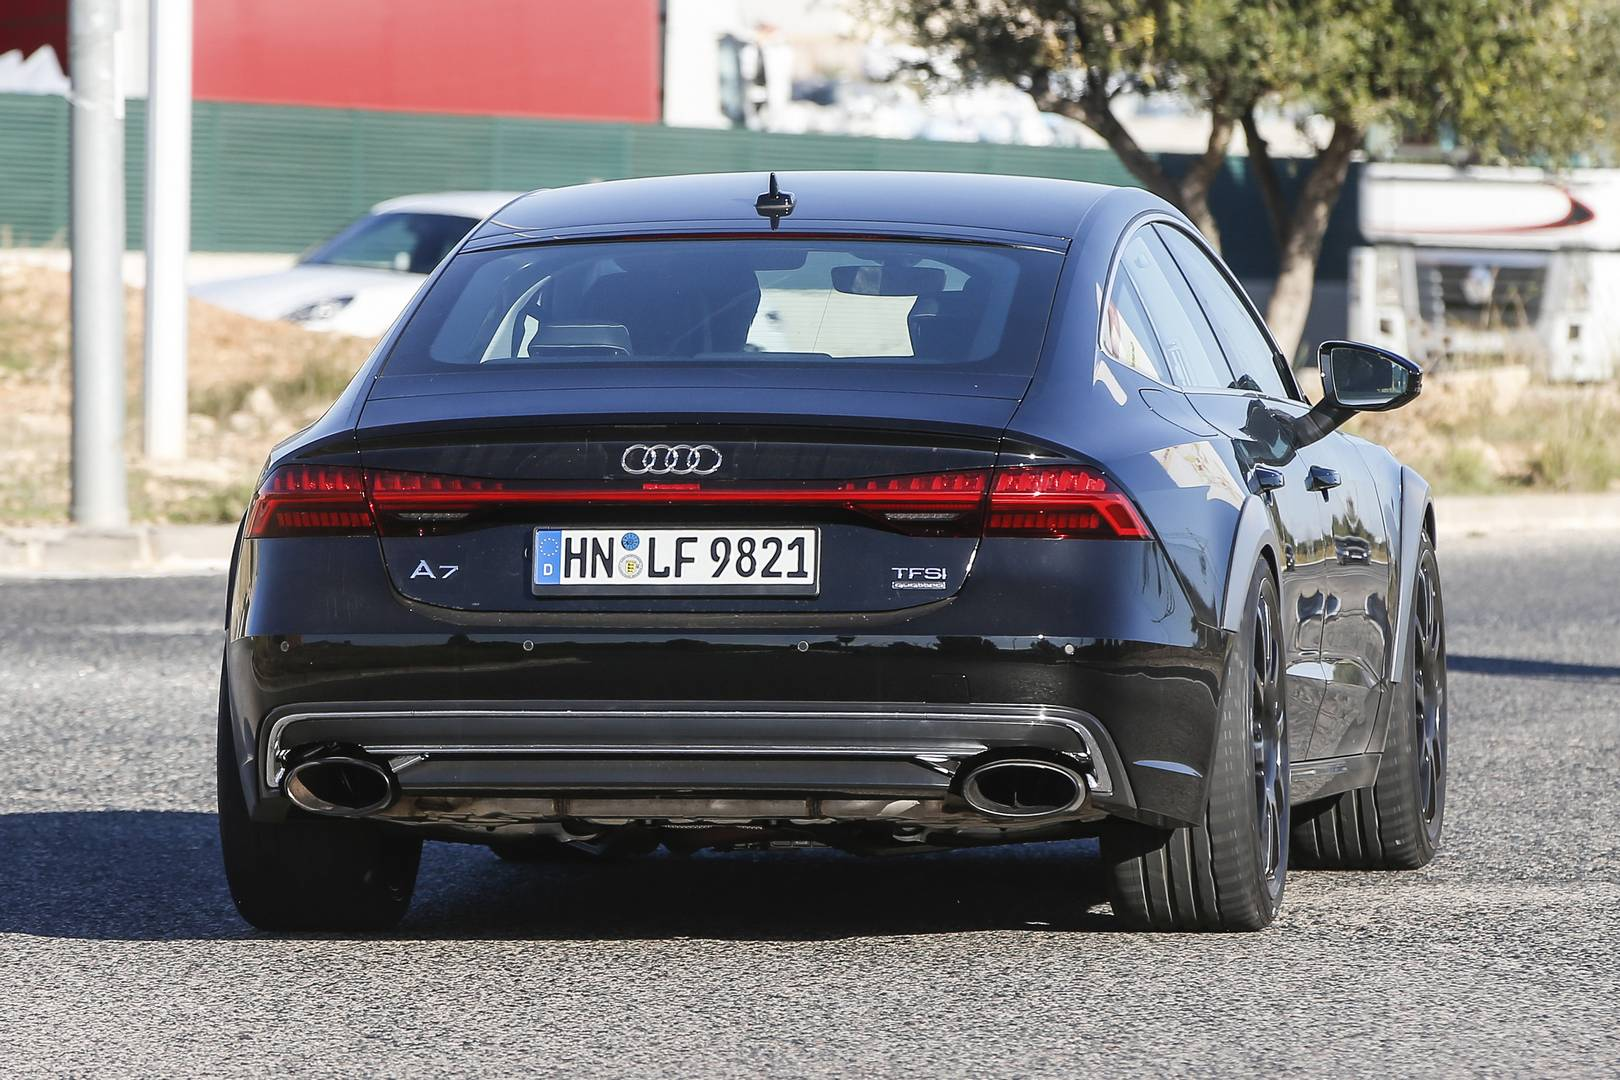 2019 Audi Rs7 Test Mule Supercar Report